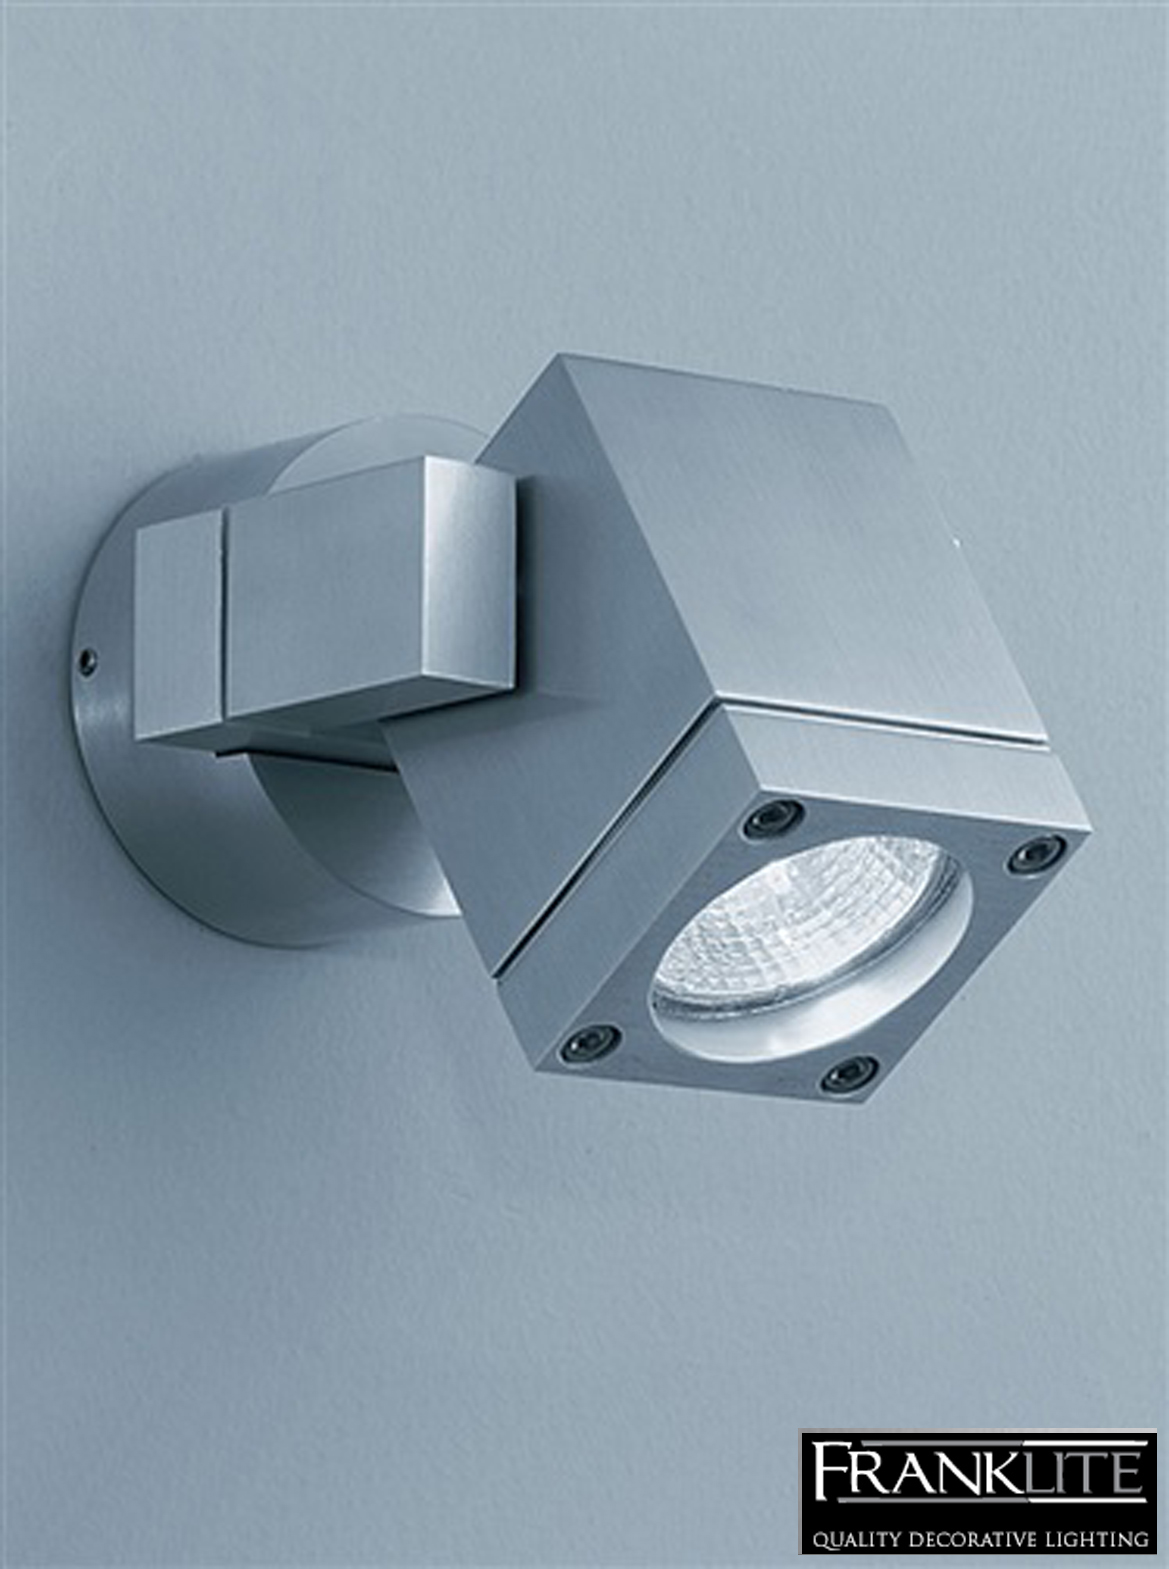 Franklite nocturn exterior brushed aluminium spotlight ip54 wall fitting wb573